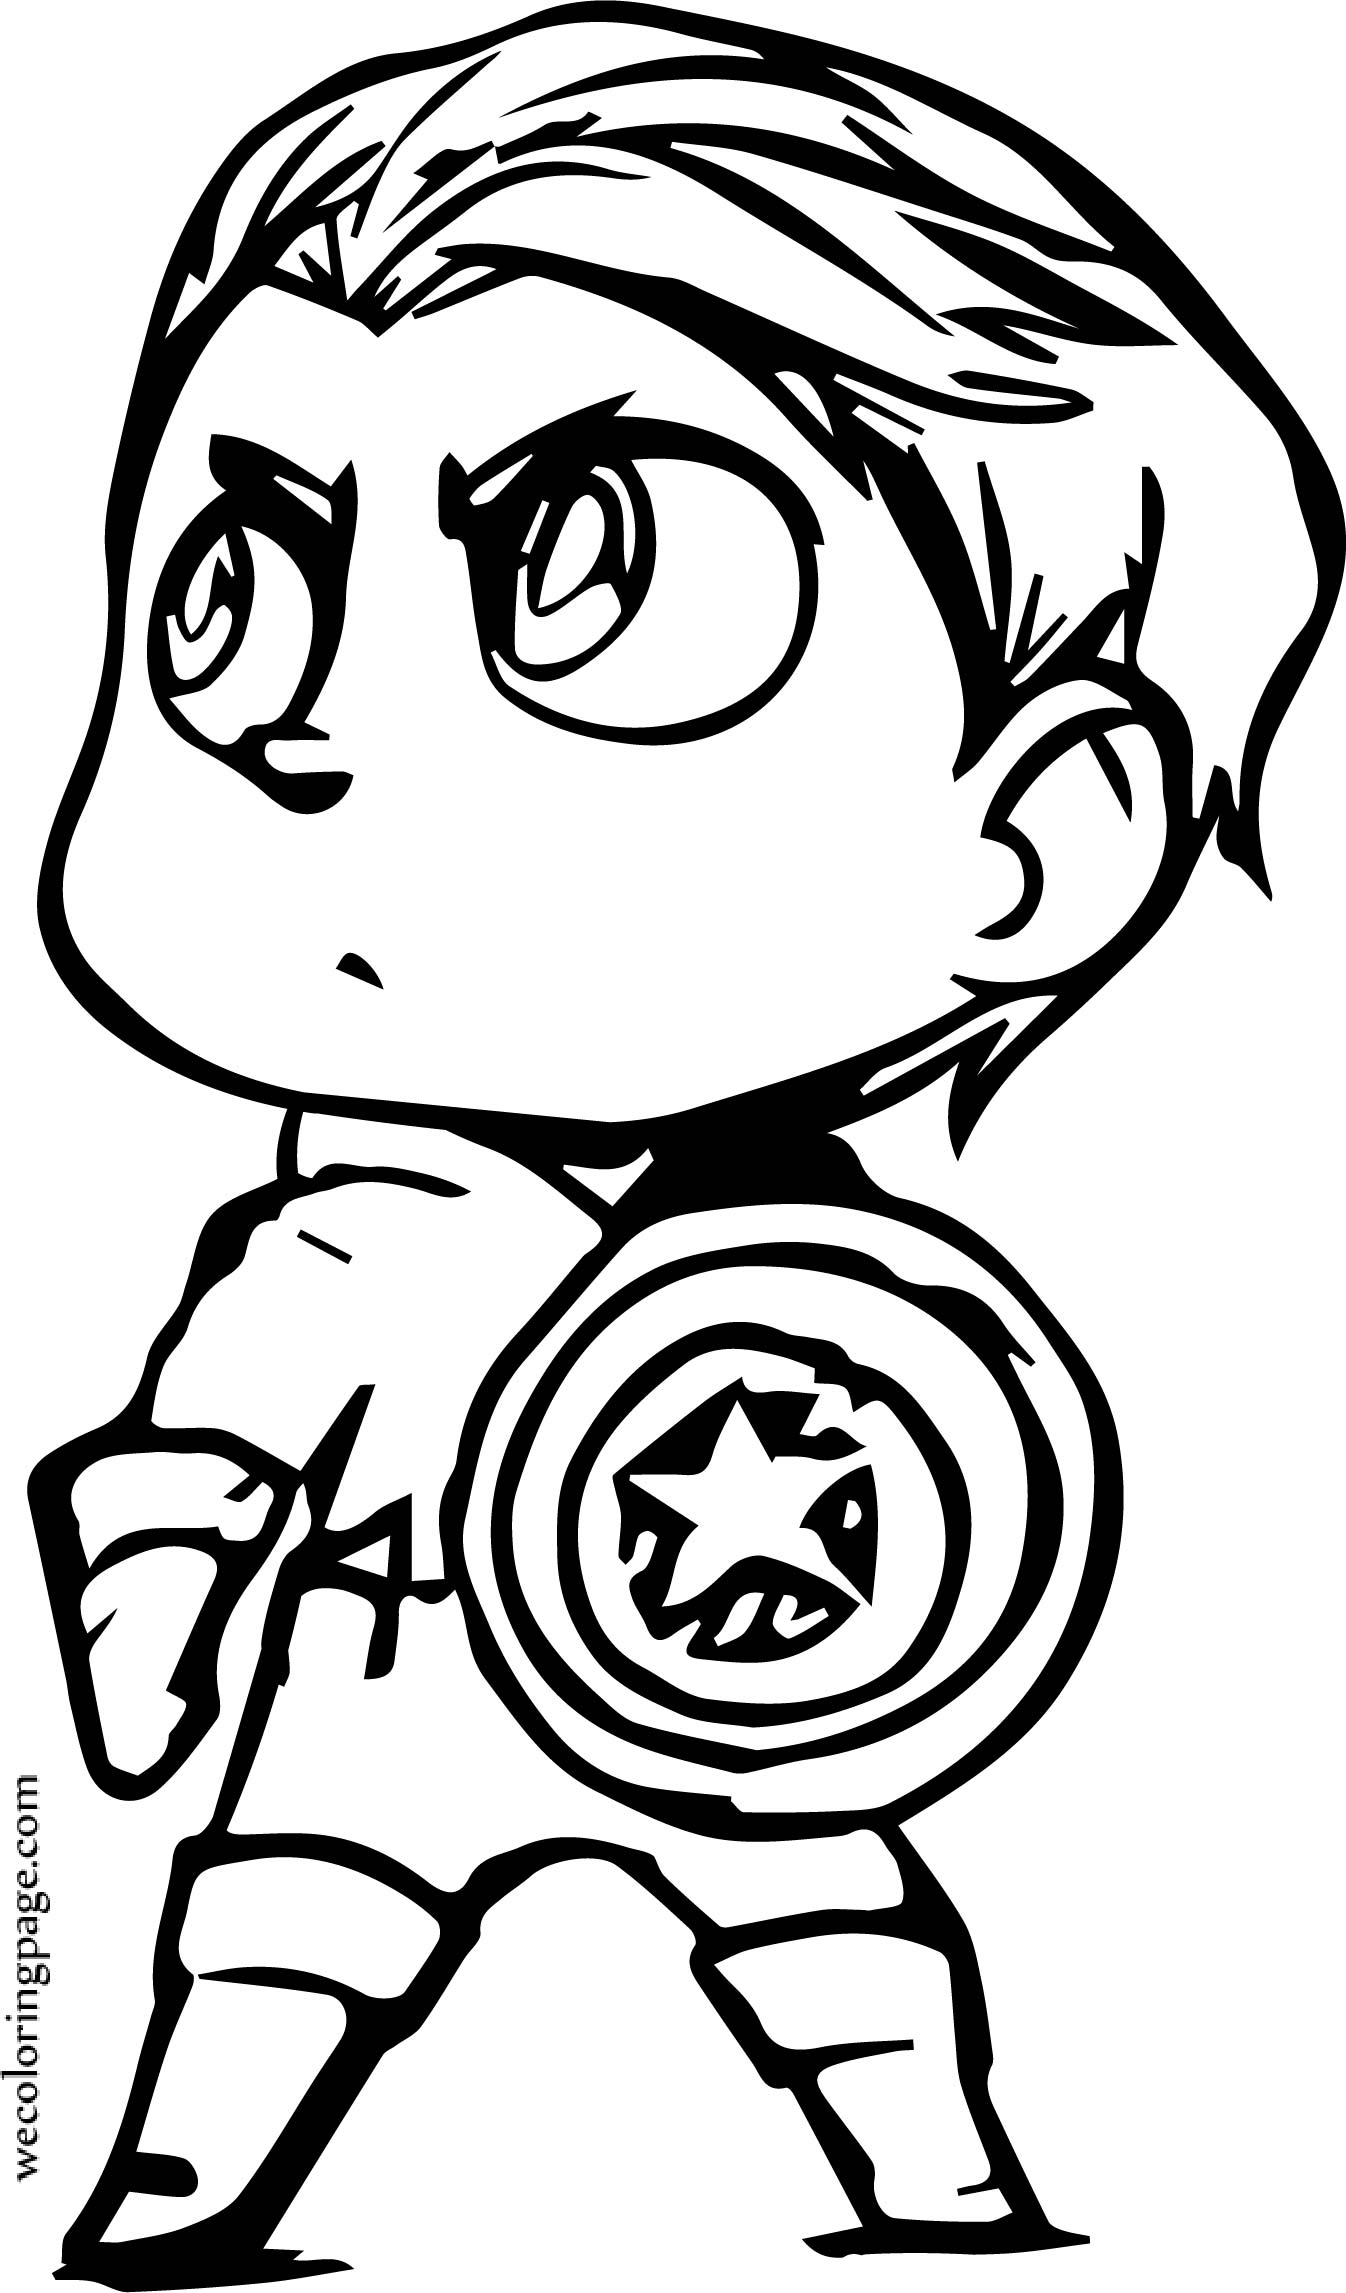 chibi avengers coloring pages draw chibi avengers black widow sketch coloring page avengers chibi coloring pages